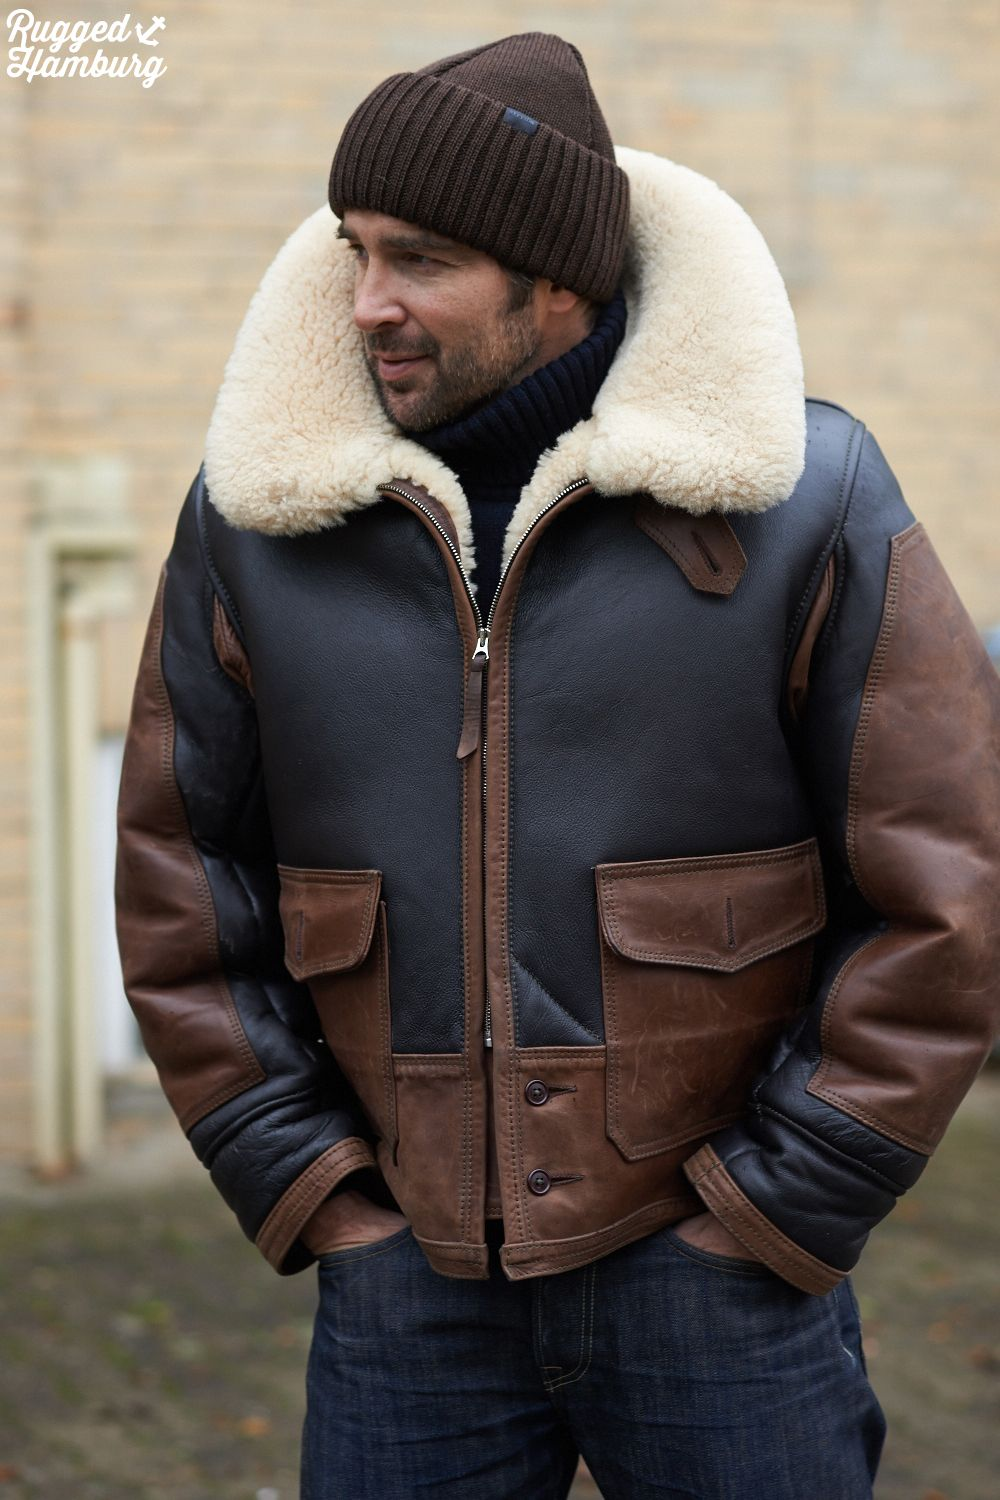 49579546d ruggedhamburg | Men Casuals | Sheepskin jacket, Jackets, Mens ...